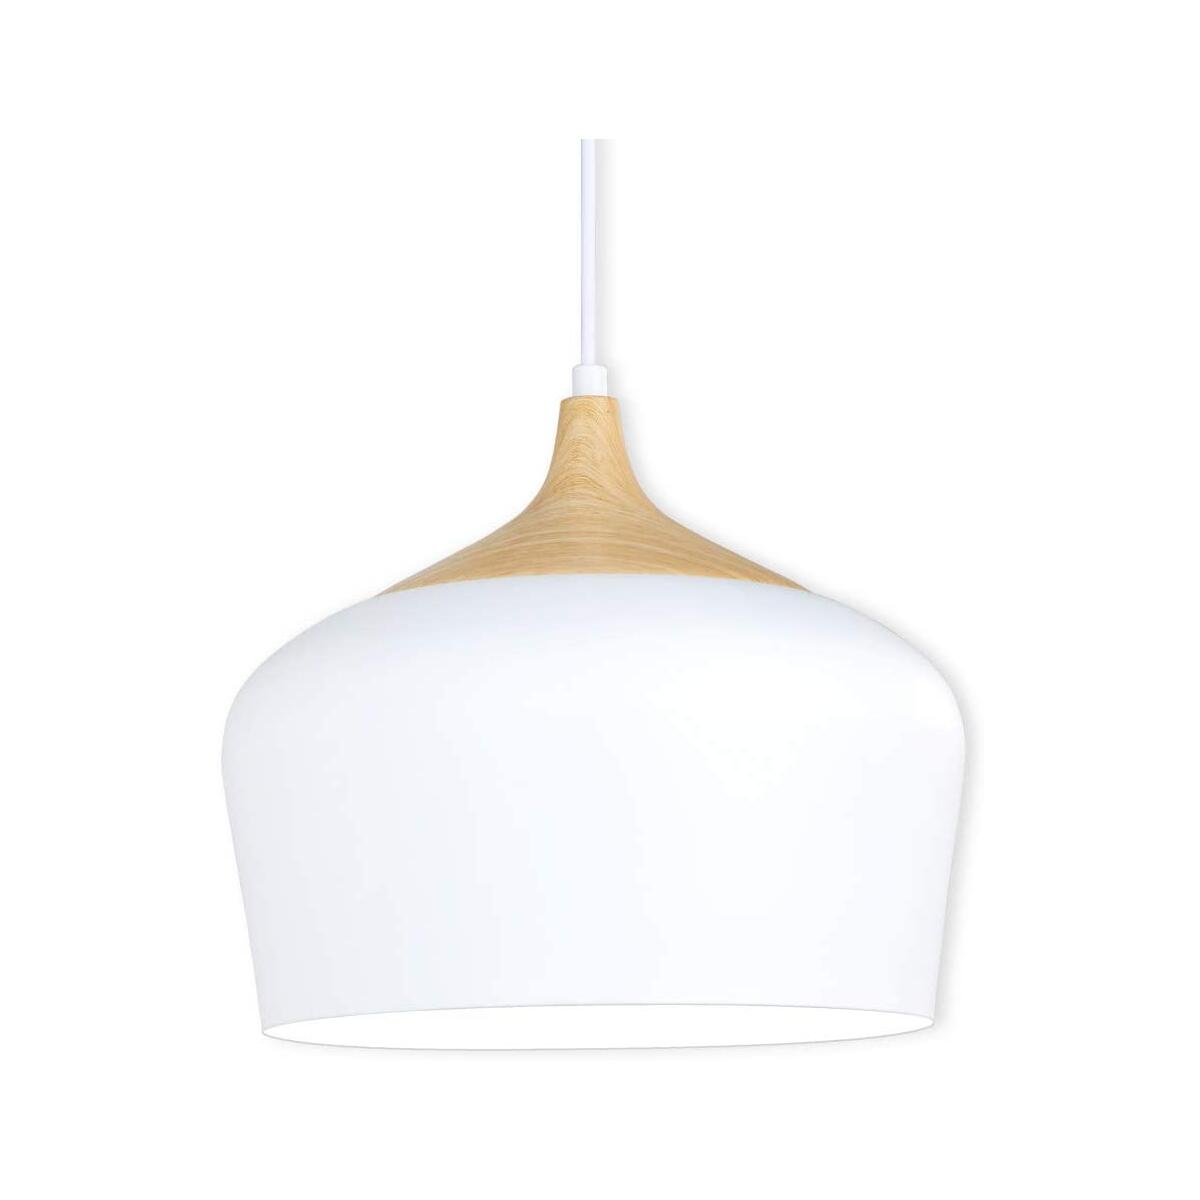 Karmiqi Modern Pendant Light, Bulb Included, Wood Pattern Ceiling Light Fixtures with Metal Shade, Hanging Light for Kitchen, Dining Room, Living Rooms, Hallway(White)